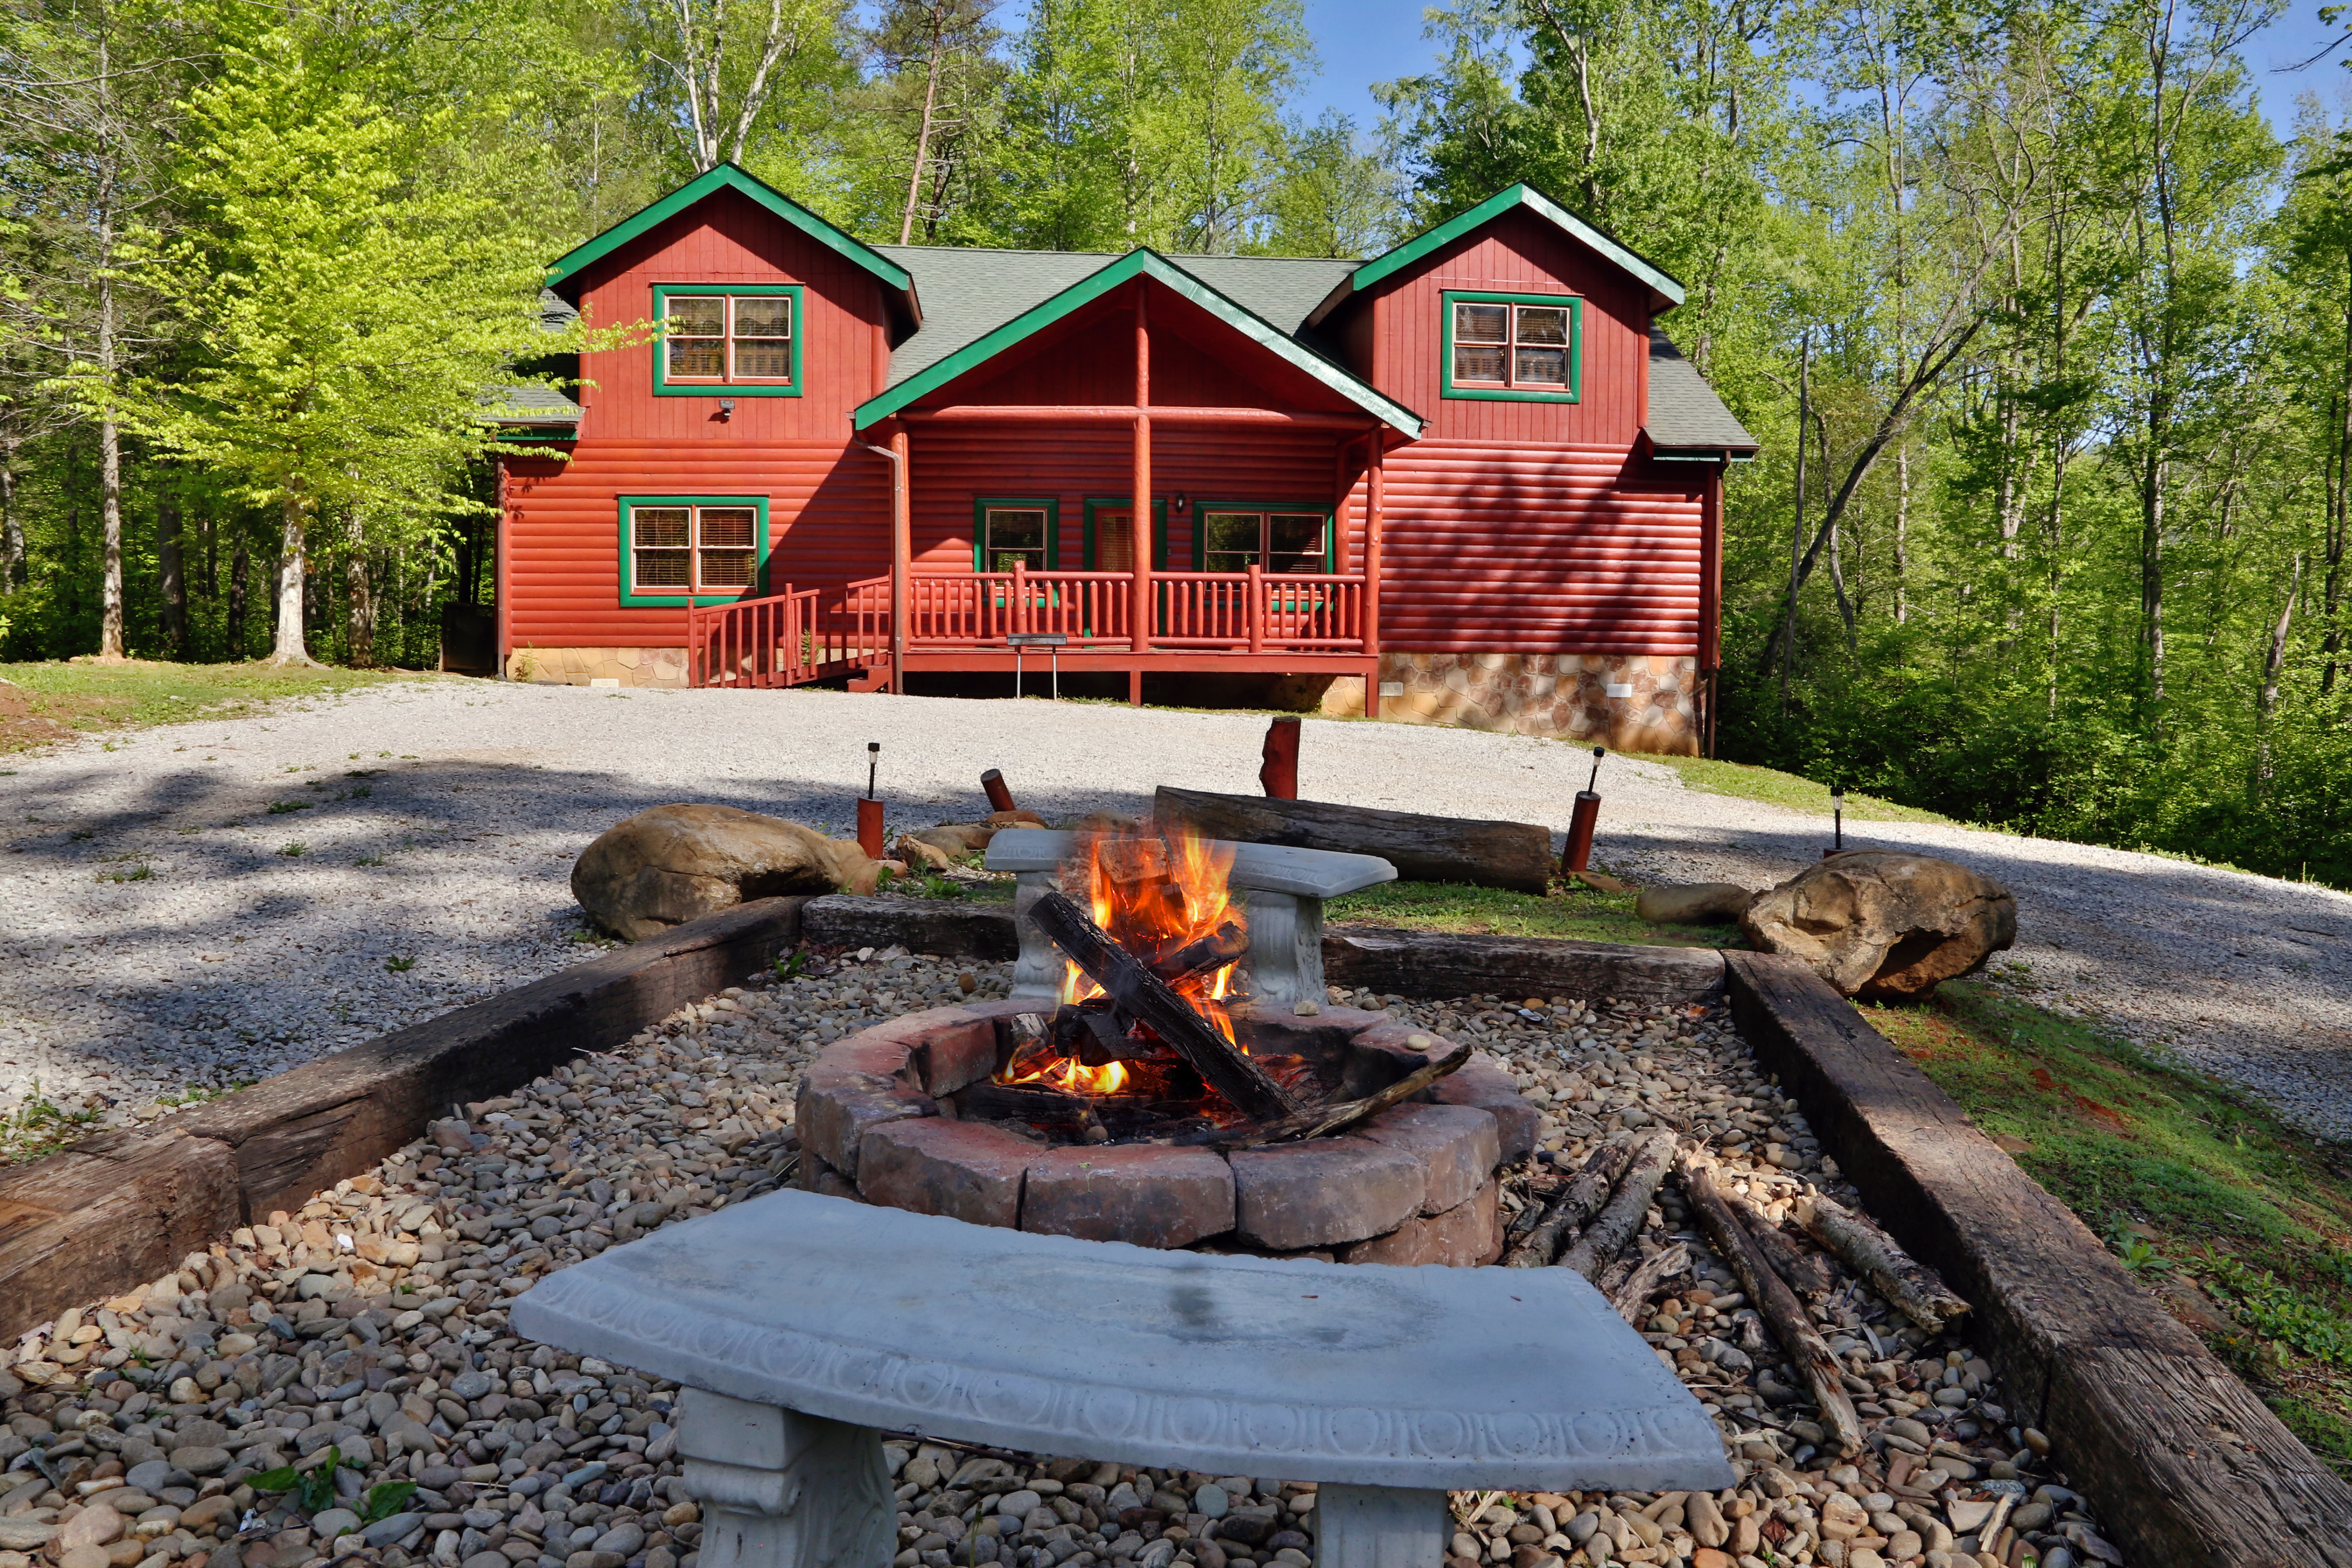 cabin drobek forge and info pet rentals deals tennessee indoor pool with pigeon in friendly theater luxury tn cabins gatlinburg private